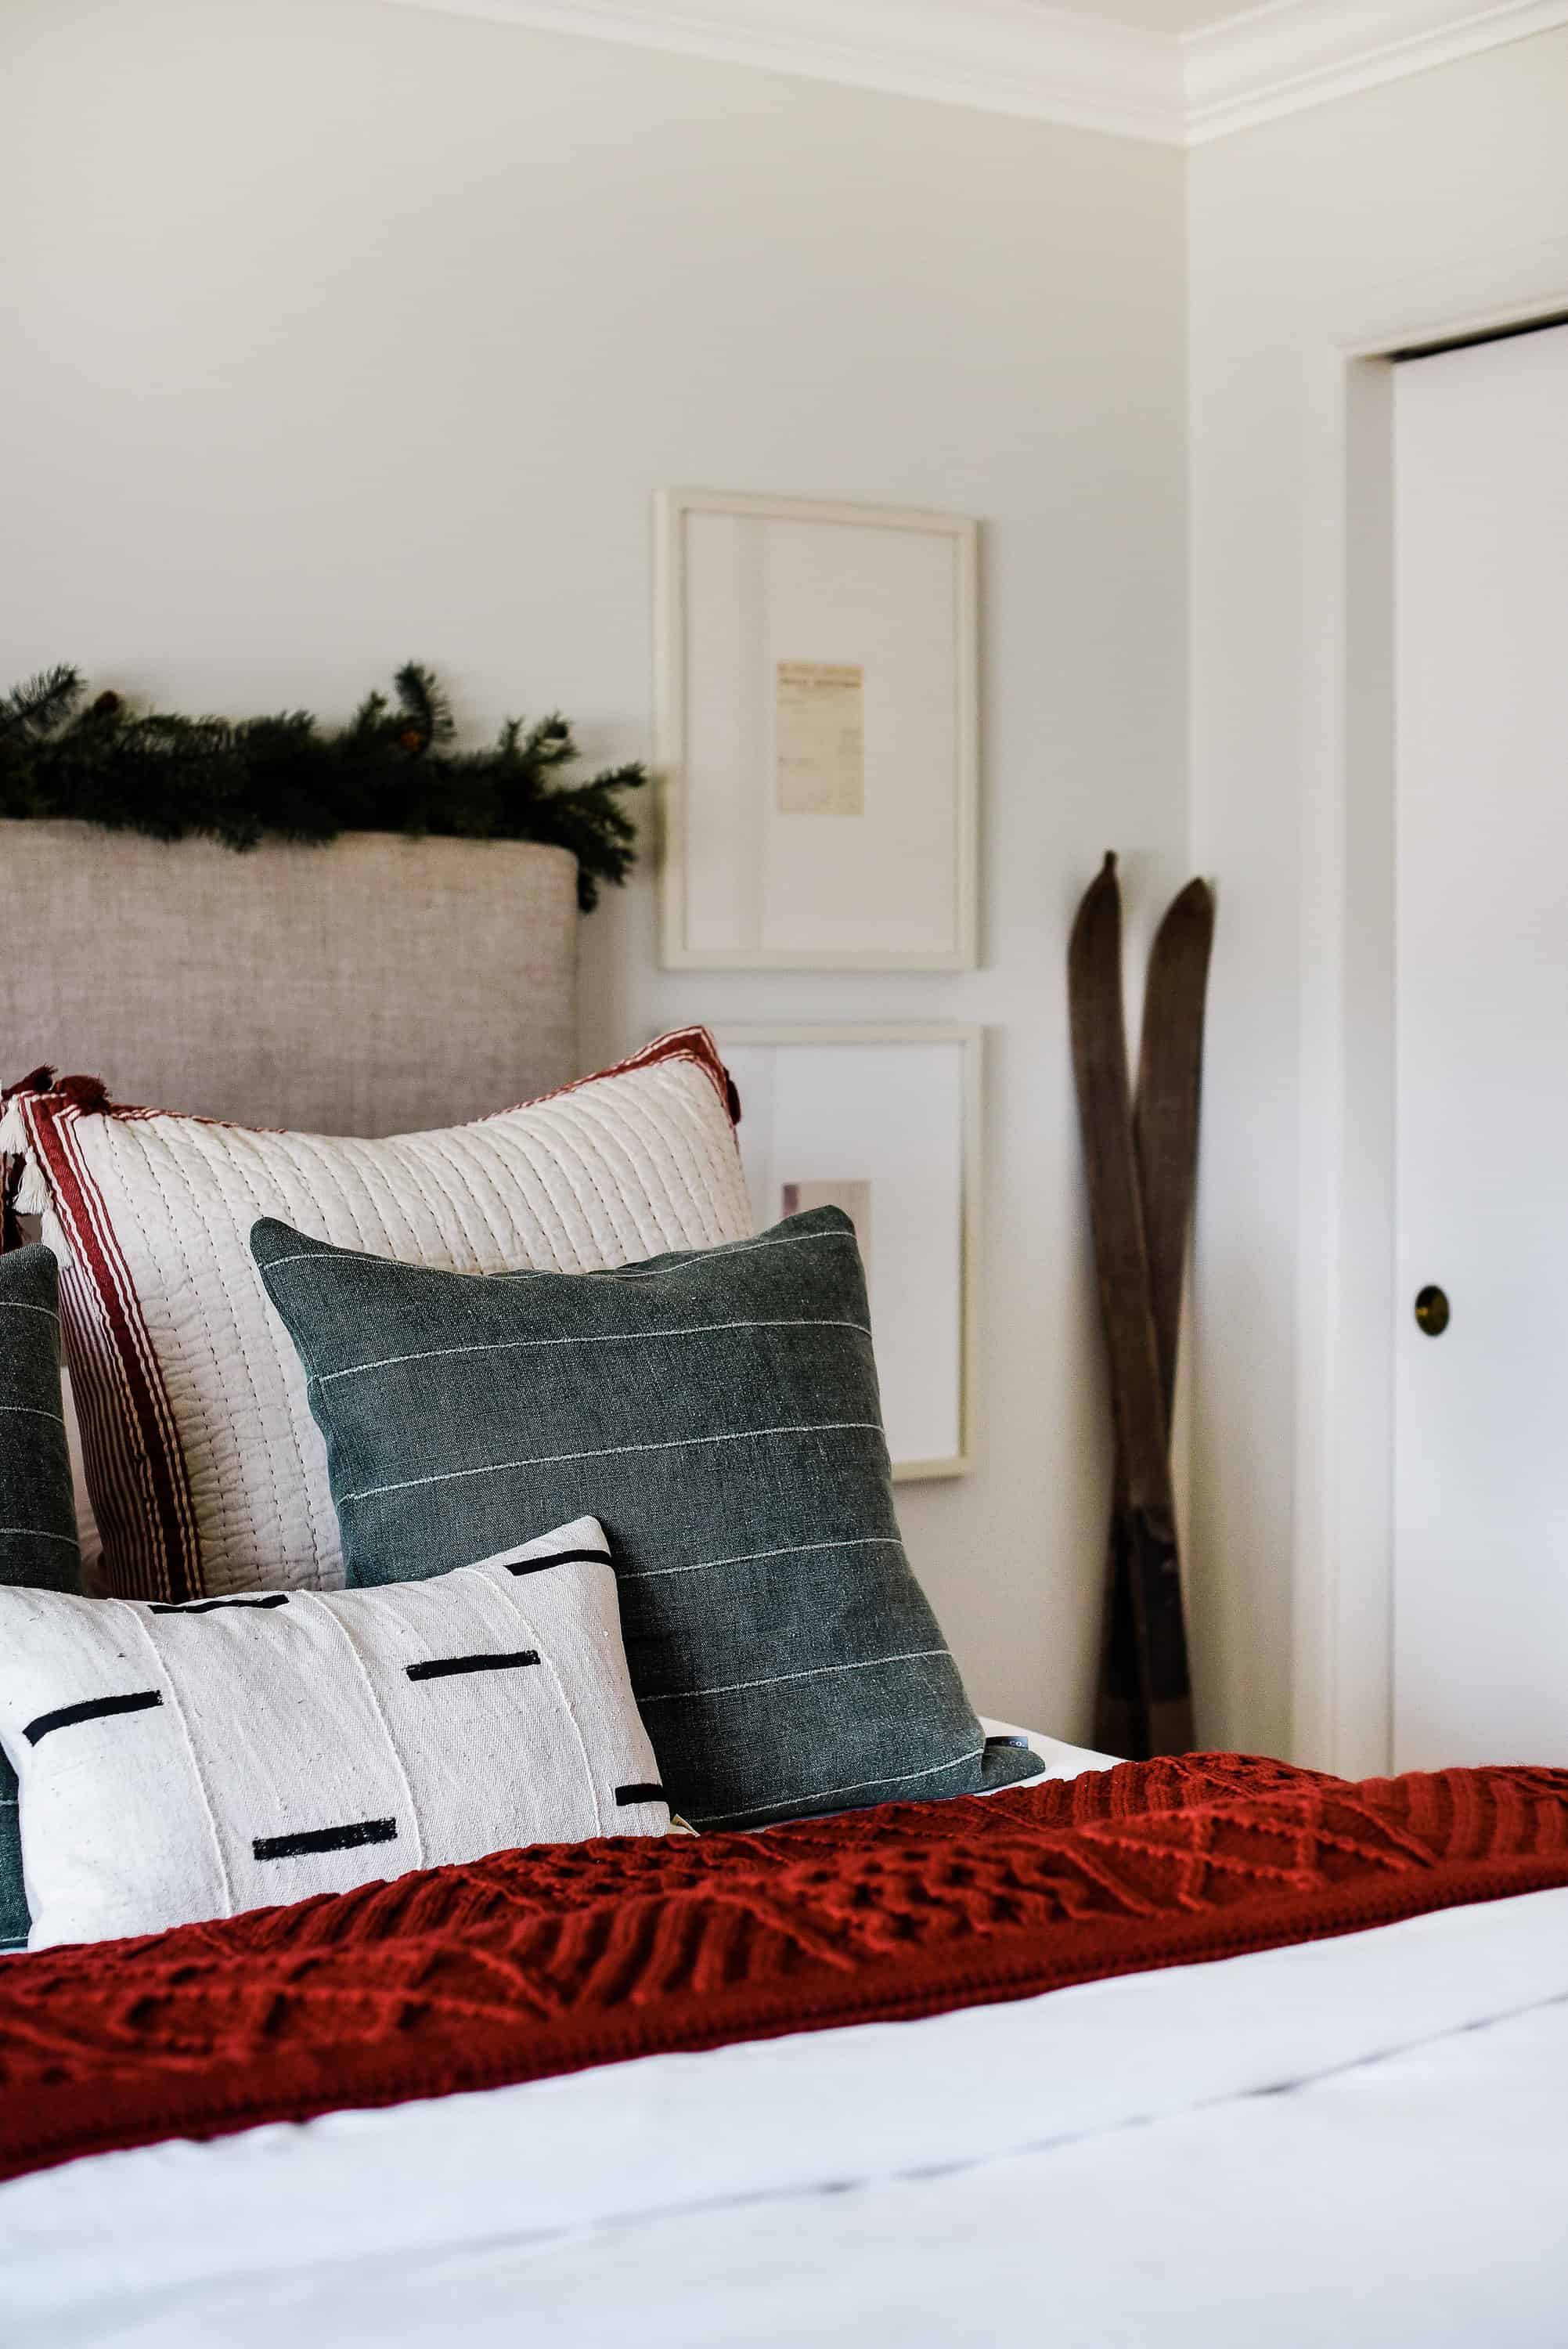 The stars of this Christmas bedroom are heirloom items found in our old farmhouse, I've repurposed them to fit with our modern aesthetic while keeping some of the old world charm. Come on in!